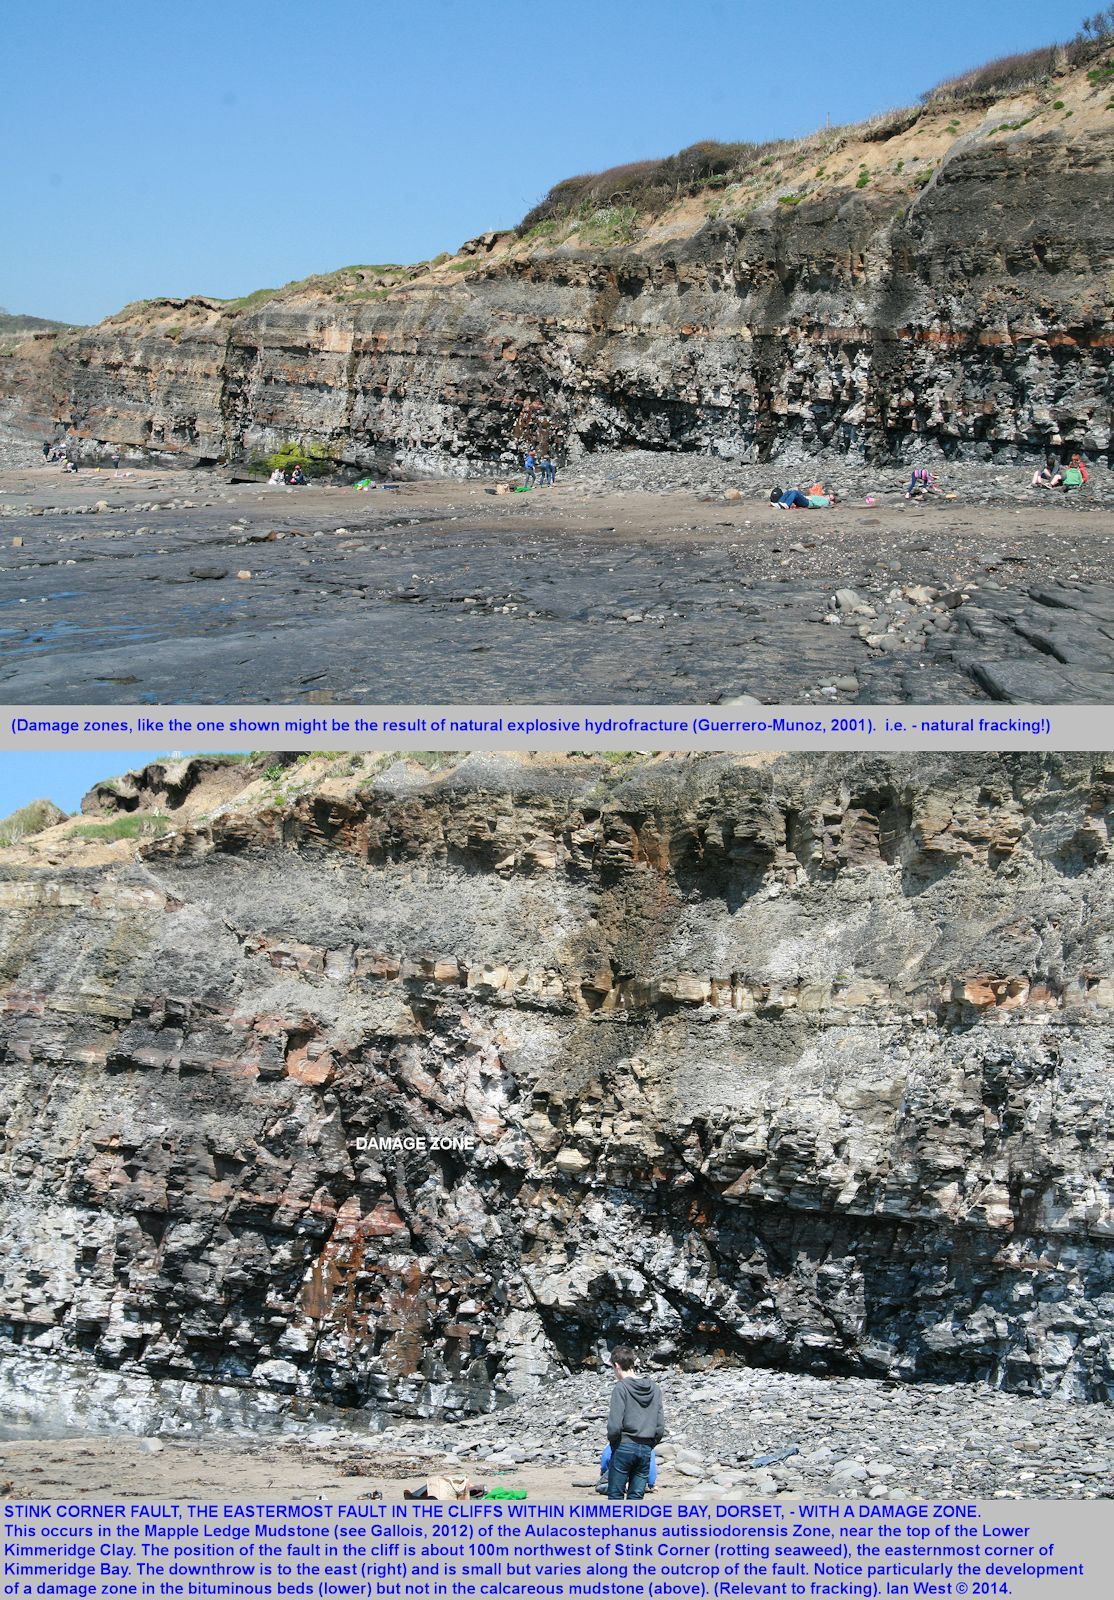 Corner Fault, an extensional fault, with a damage zone, in bituminous shales of the uppermost part, the Autissiodorensis Zone, of the Lower Kimmeridge Bay, Dorset, 1st May 2014